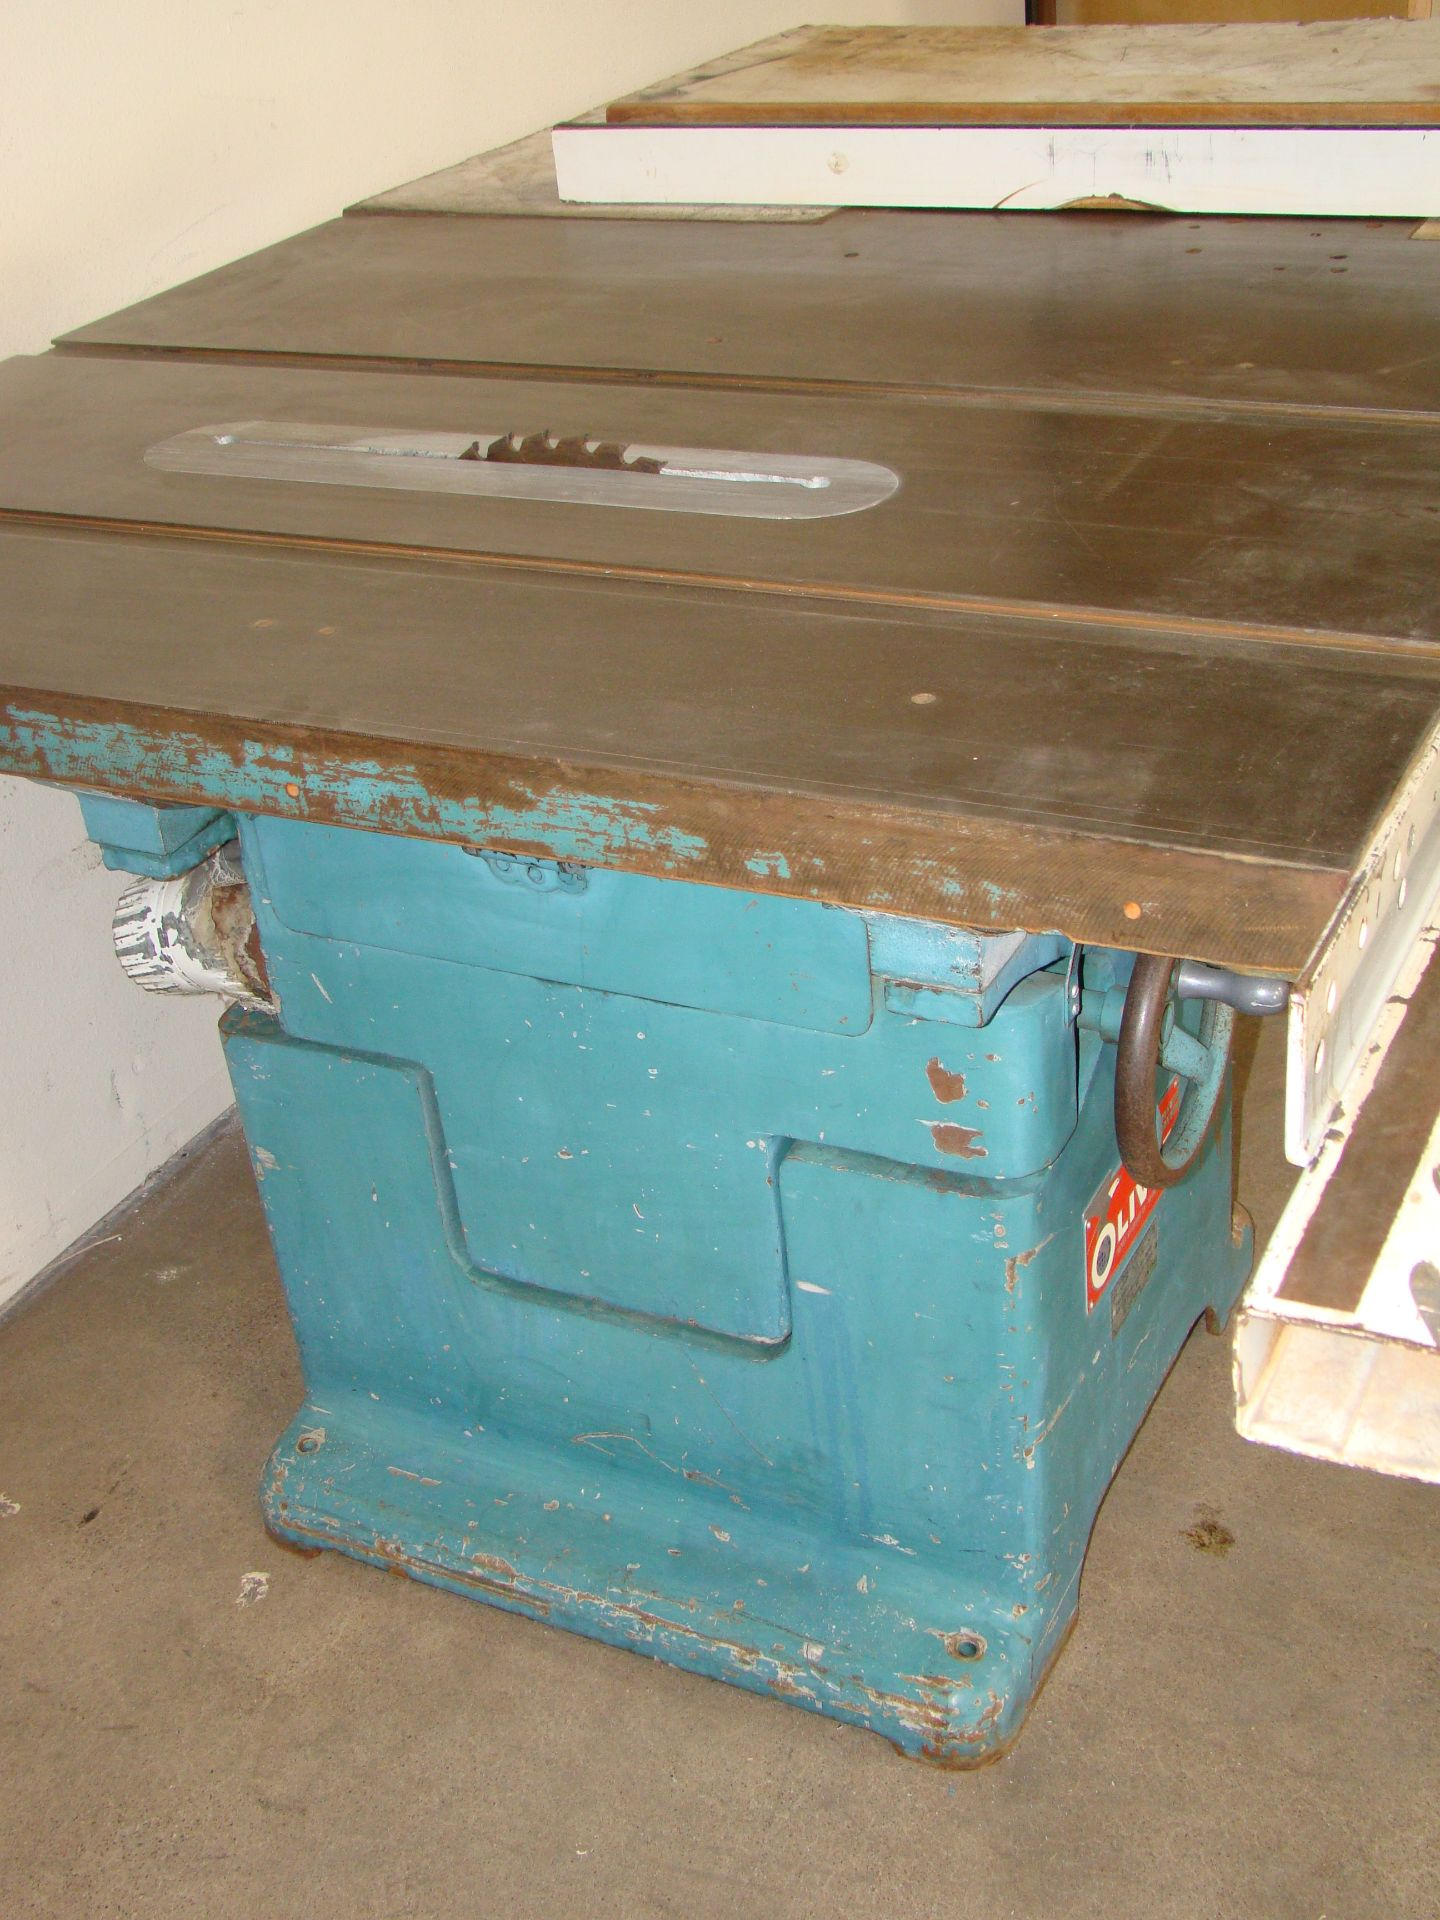 "Lot 4 - Oliver Table Saw 270-D 50"" Biesemeyer Rails & Fence 5 HP 220/440 Volt 3PH"